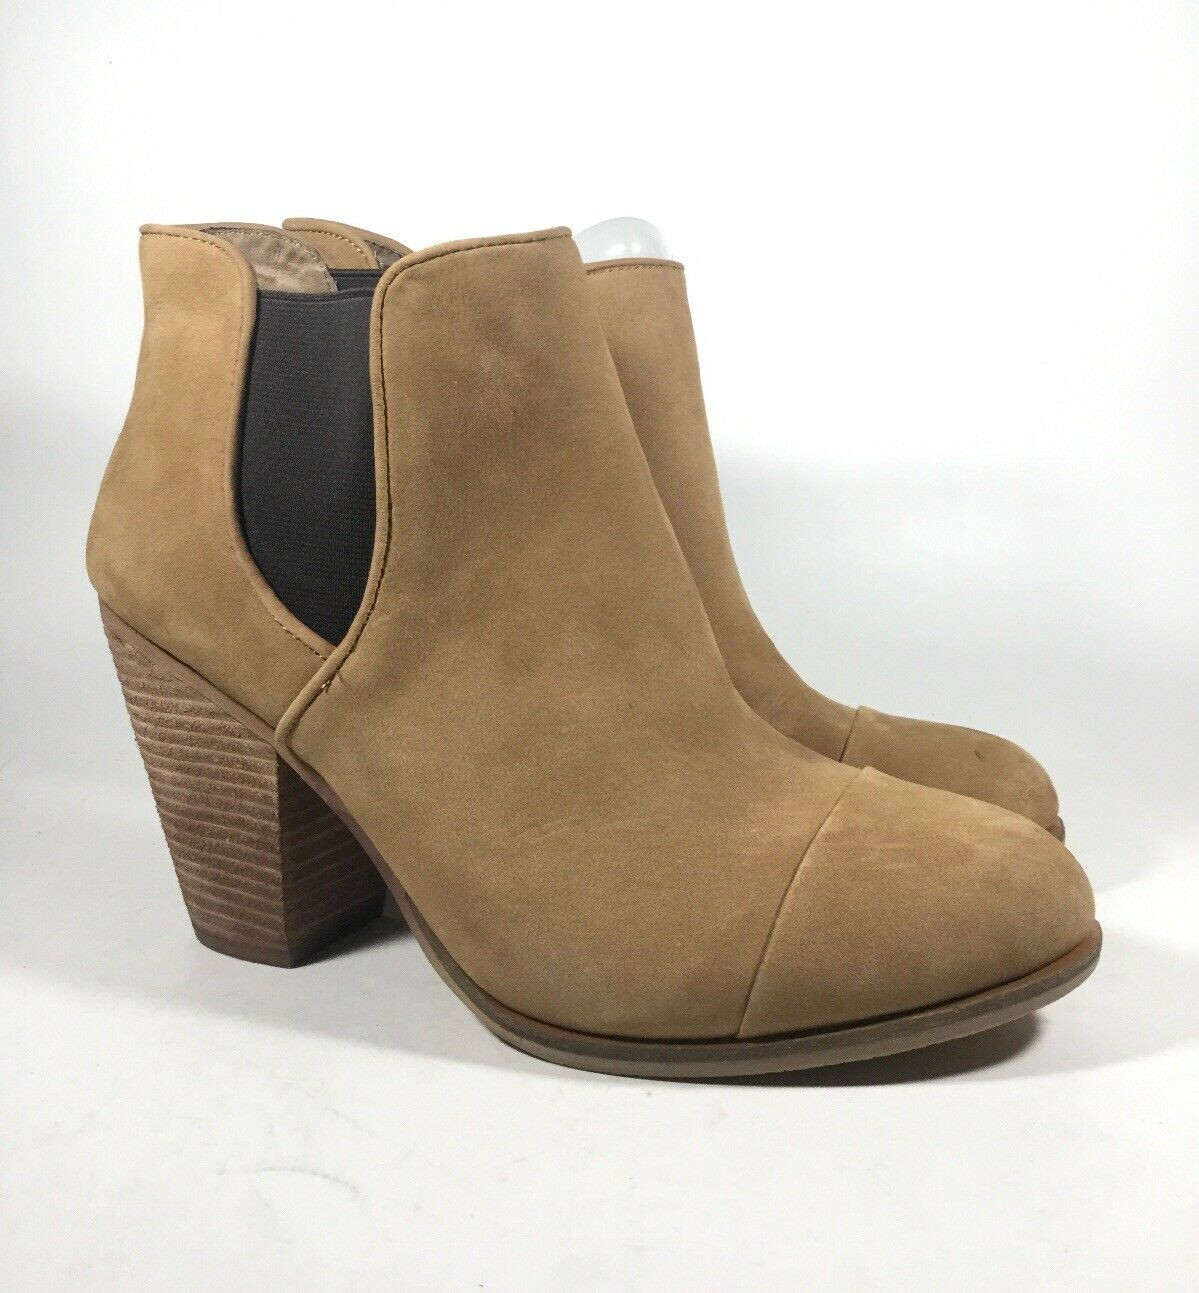 M4824 PreOwned Women's Vince Camuto Hame Leather Bootie US 10 M